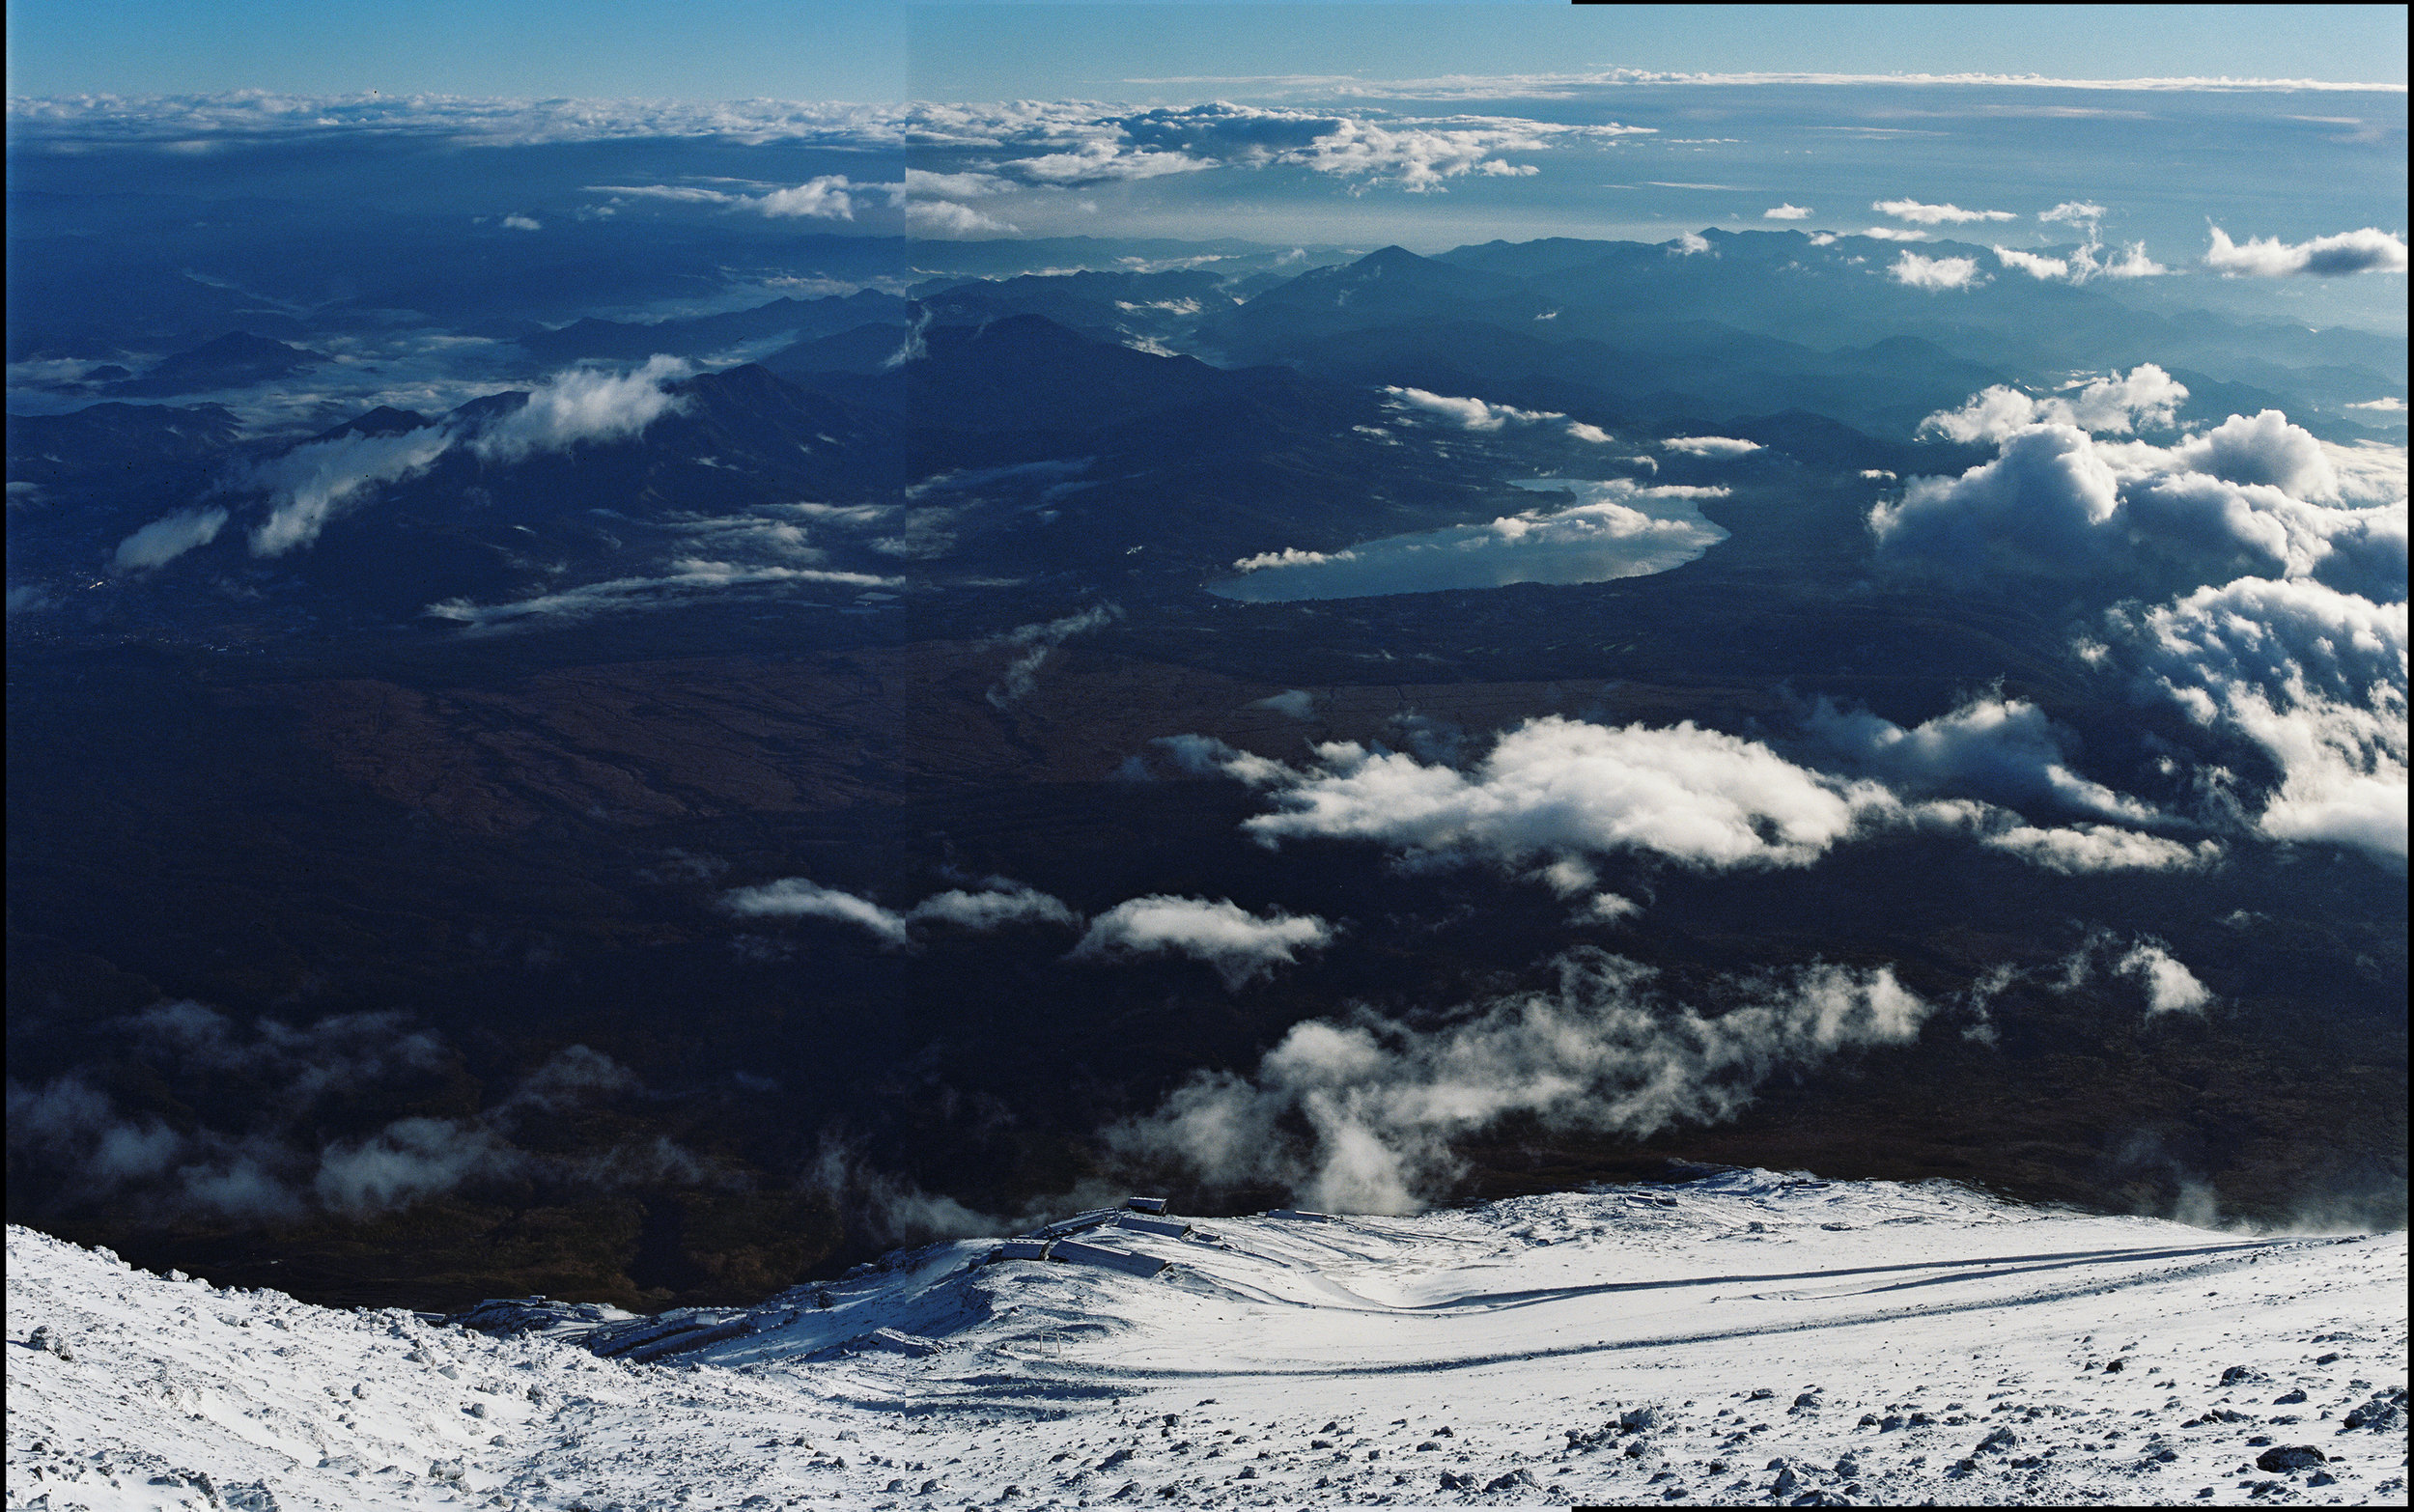 View from Summit of Mount Fuji